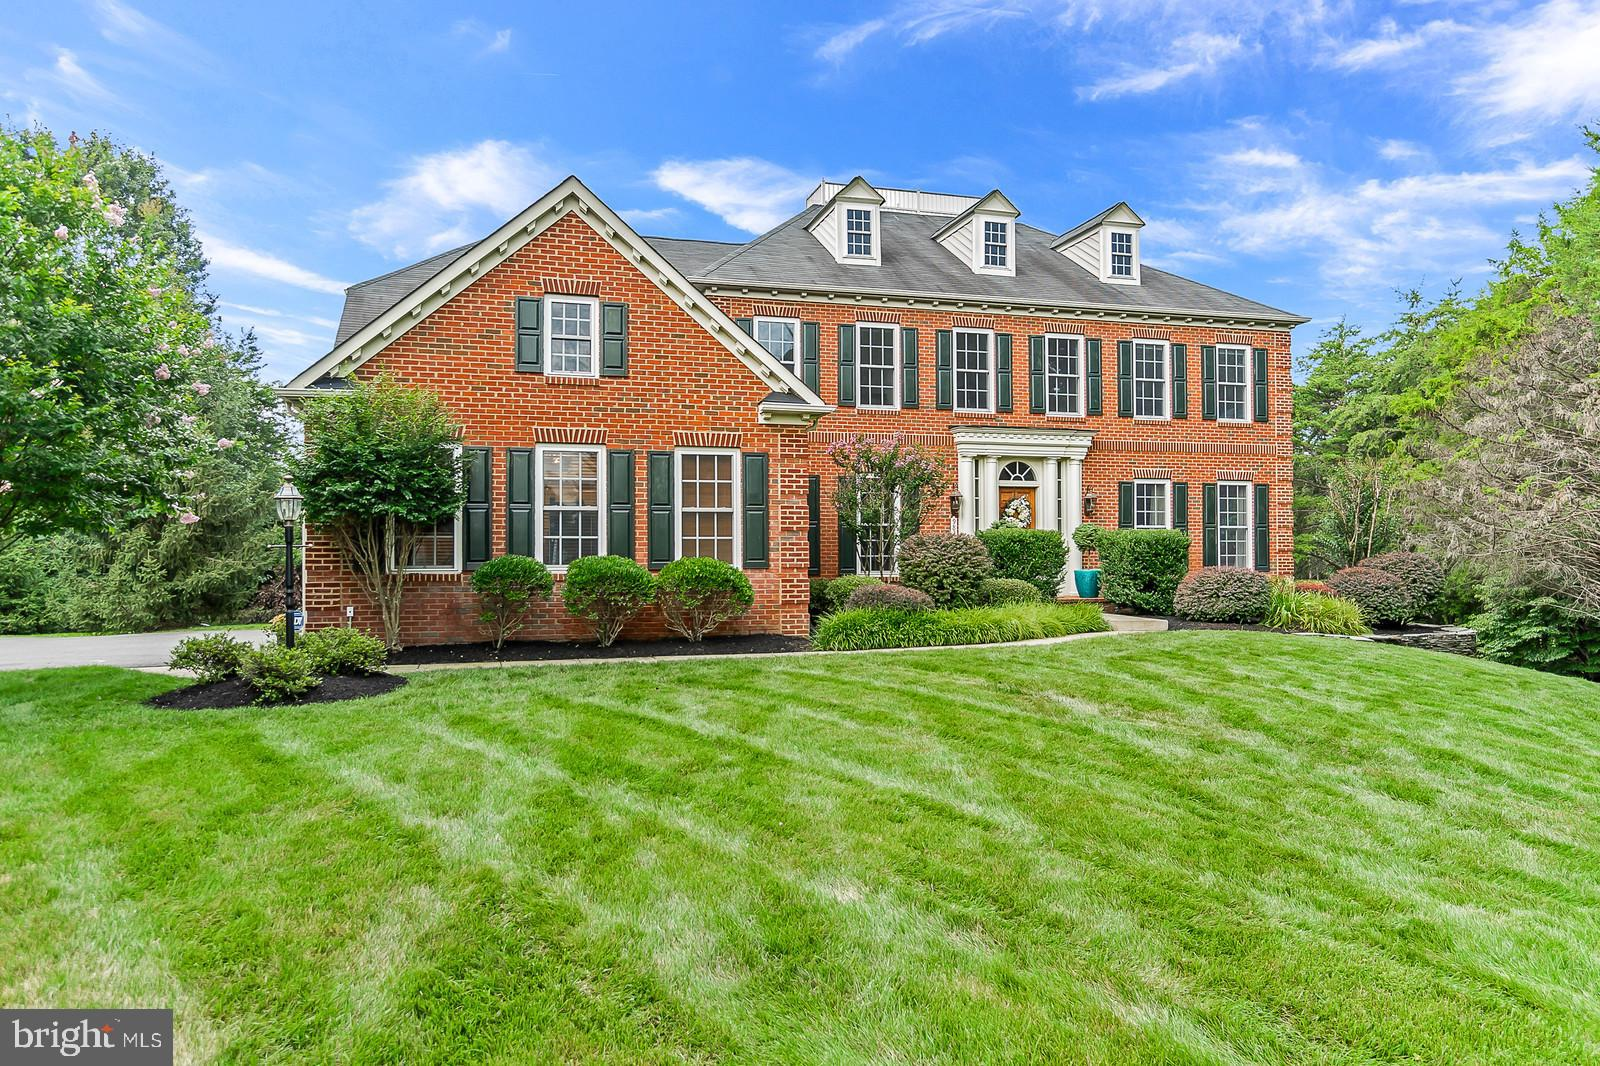 9824 GOLDENBERRY HILL LANE, MANASSAS, VA 20112